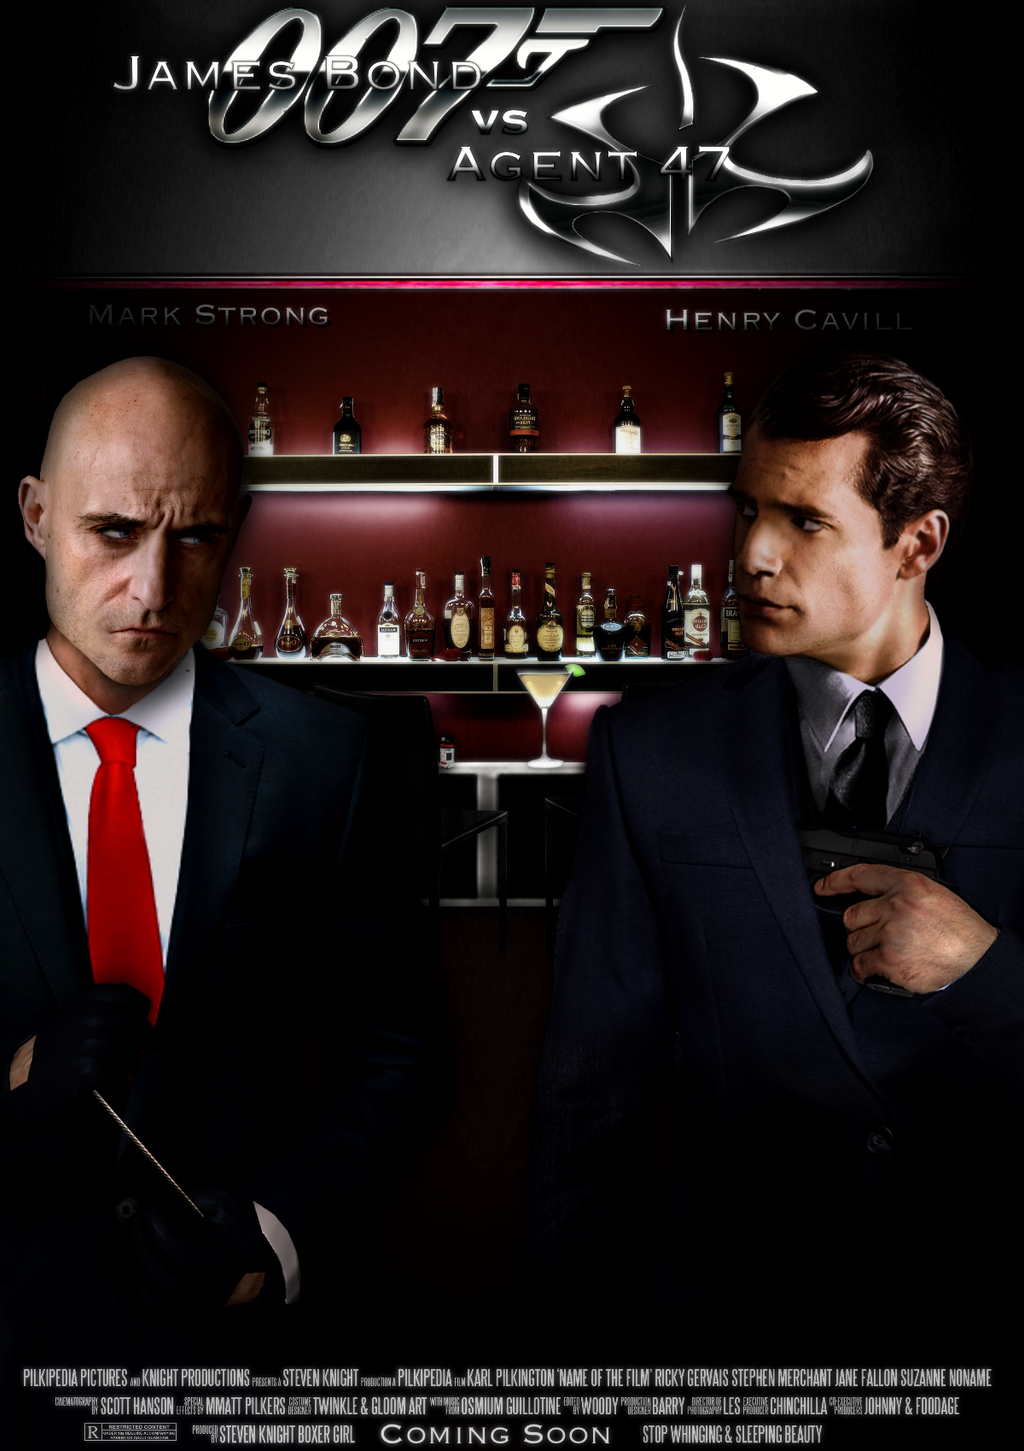 James Bond Vs Agent 47 Movie Poster By Tony Antwonio On Deviantart